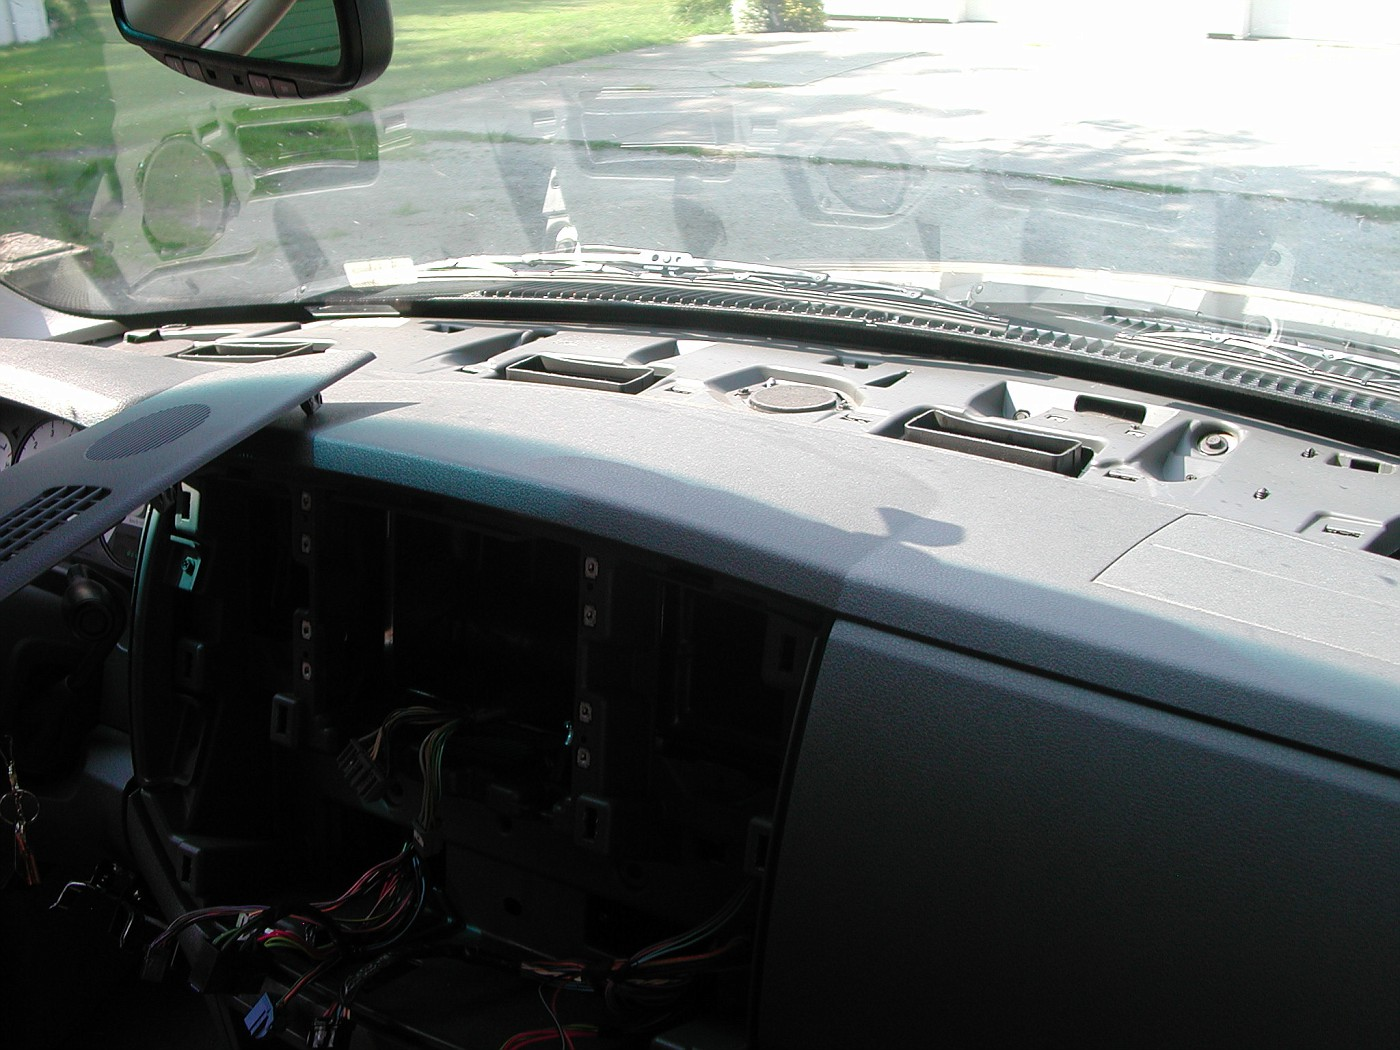 3 Dash Speakers 2012 Dodge Ram Stereo Upgrade I Dont Have A Pic Of The But This Shows Middle Speaker And One Screws As You Can See They Are Pretty Easy To Get